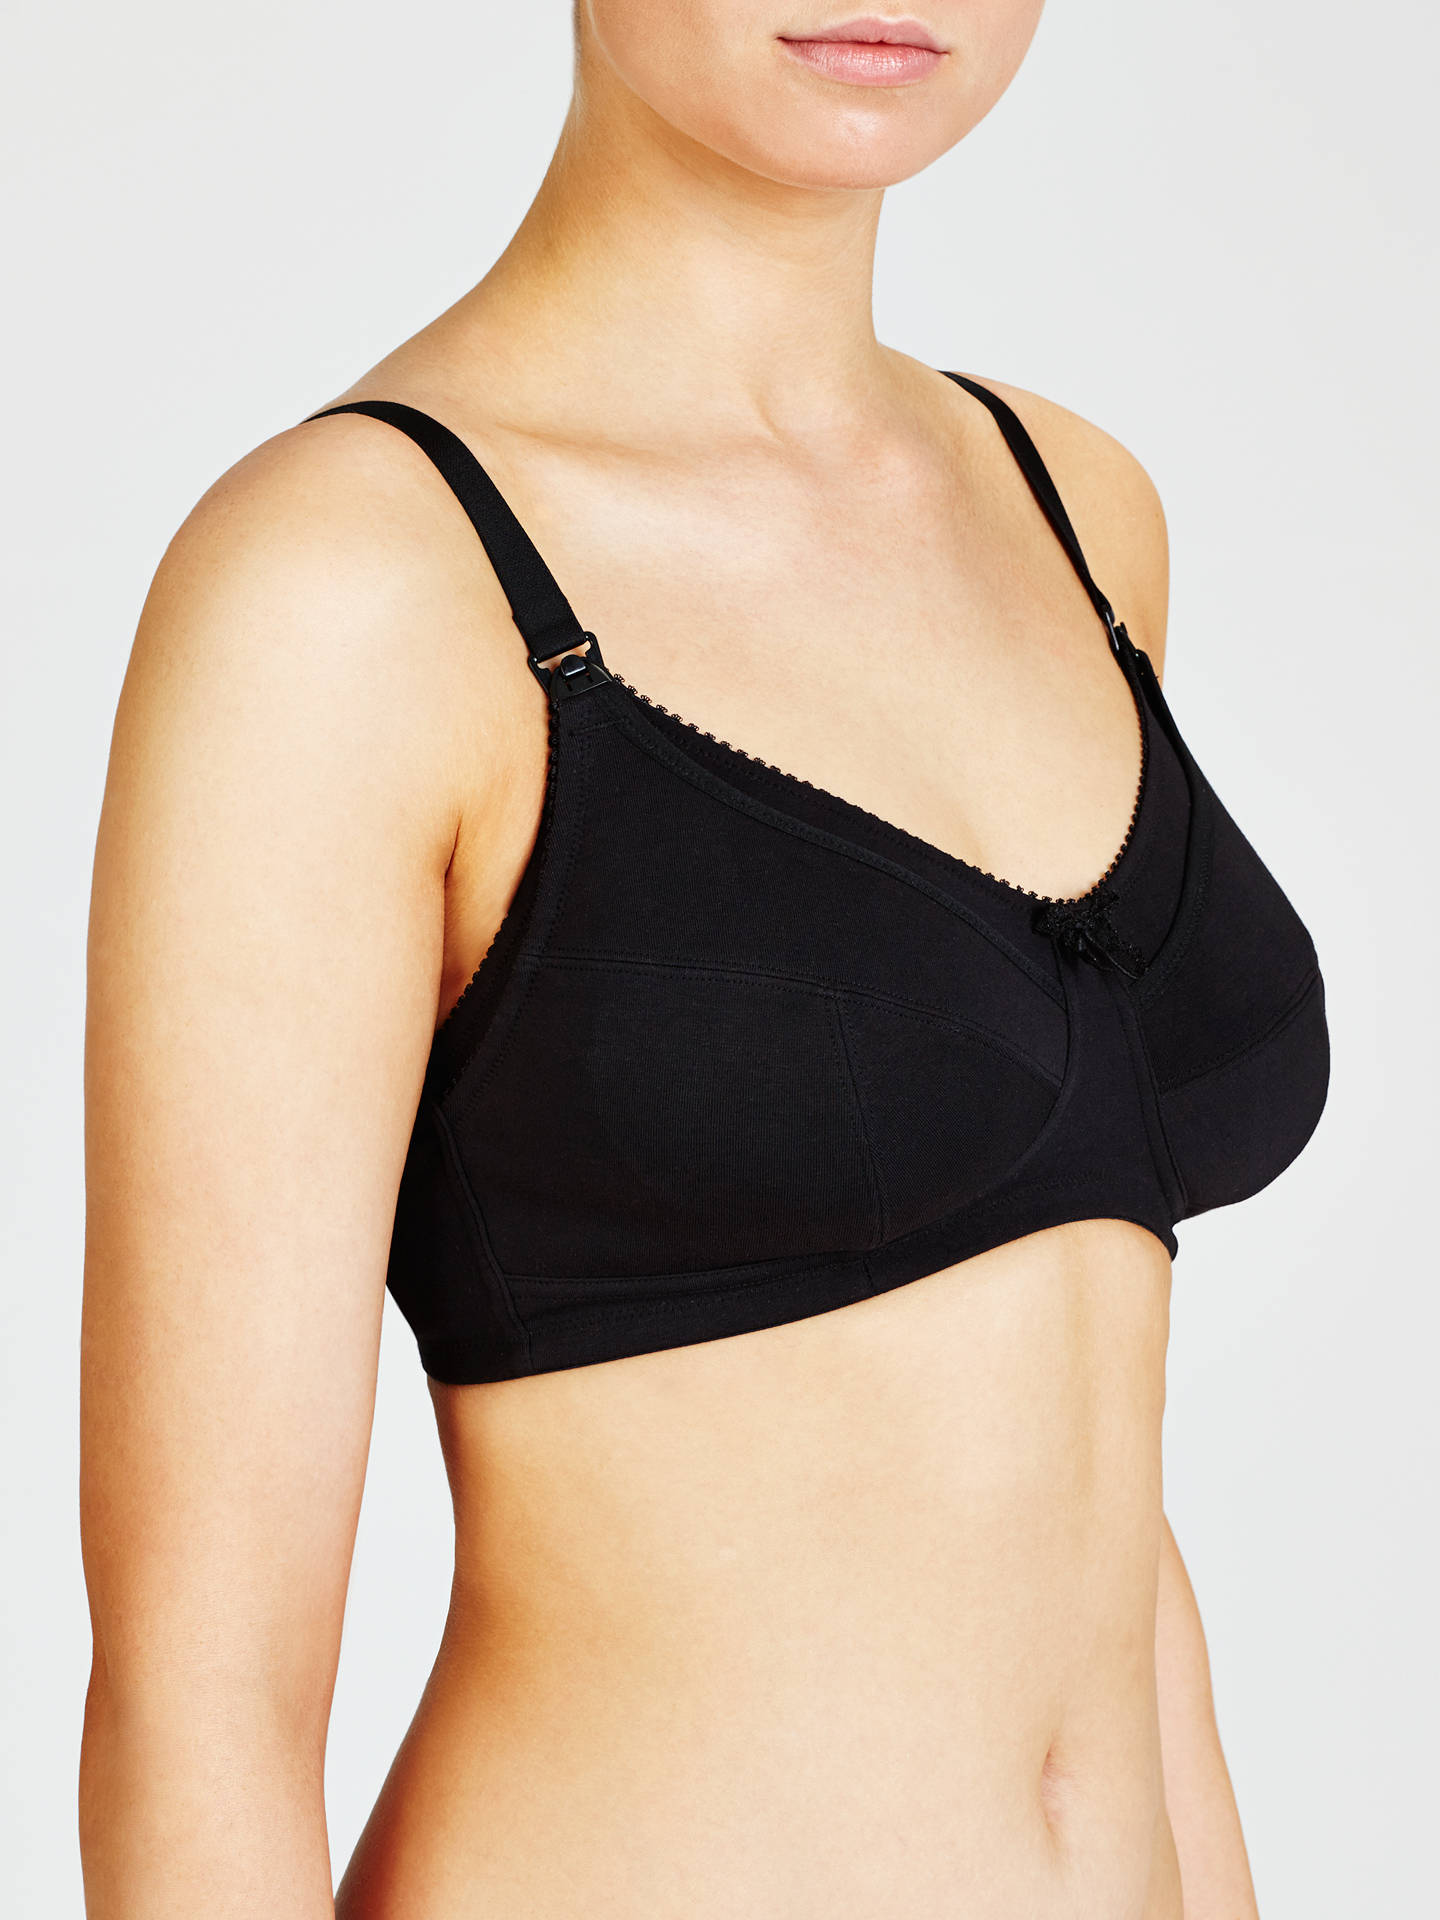 BuyJohn Lewis & Partners Maternity Bra, Pack of 2, Black / White, 32C Online at johnlewis.com